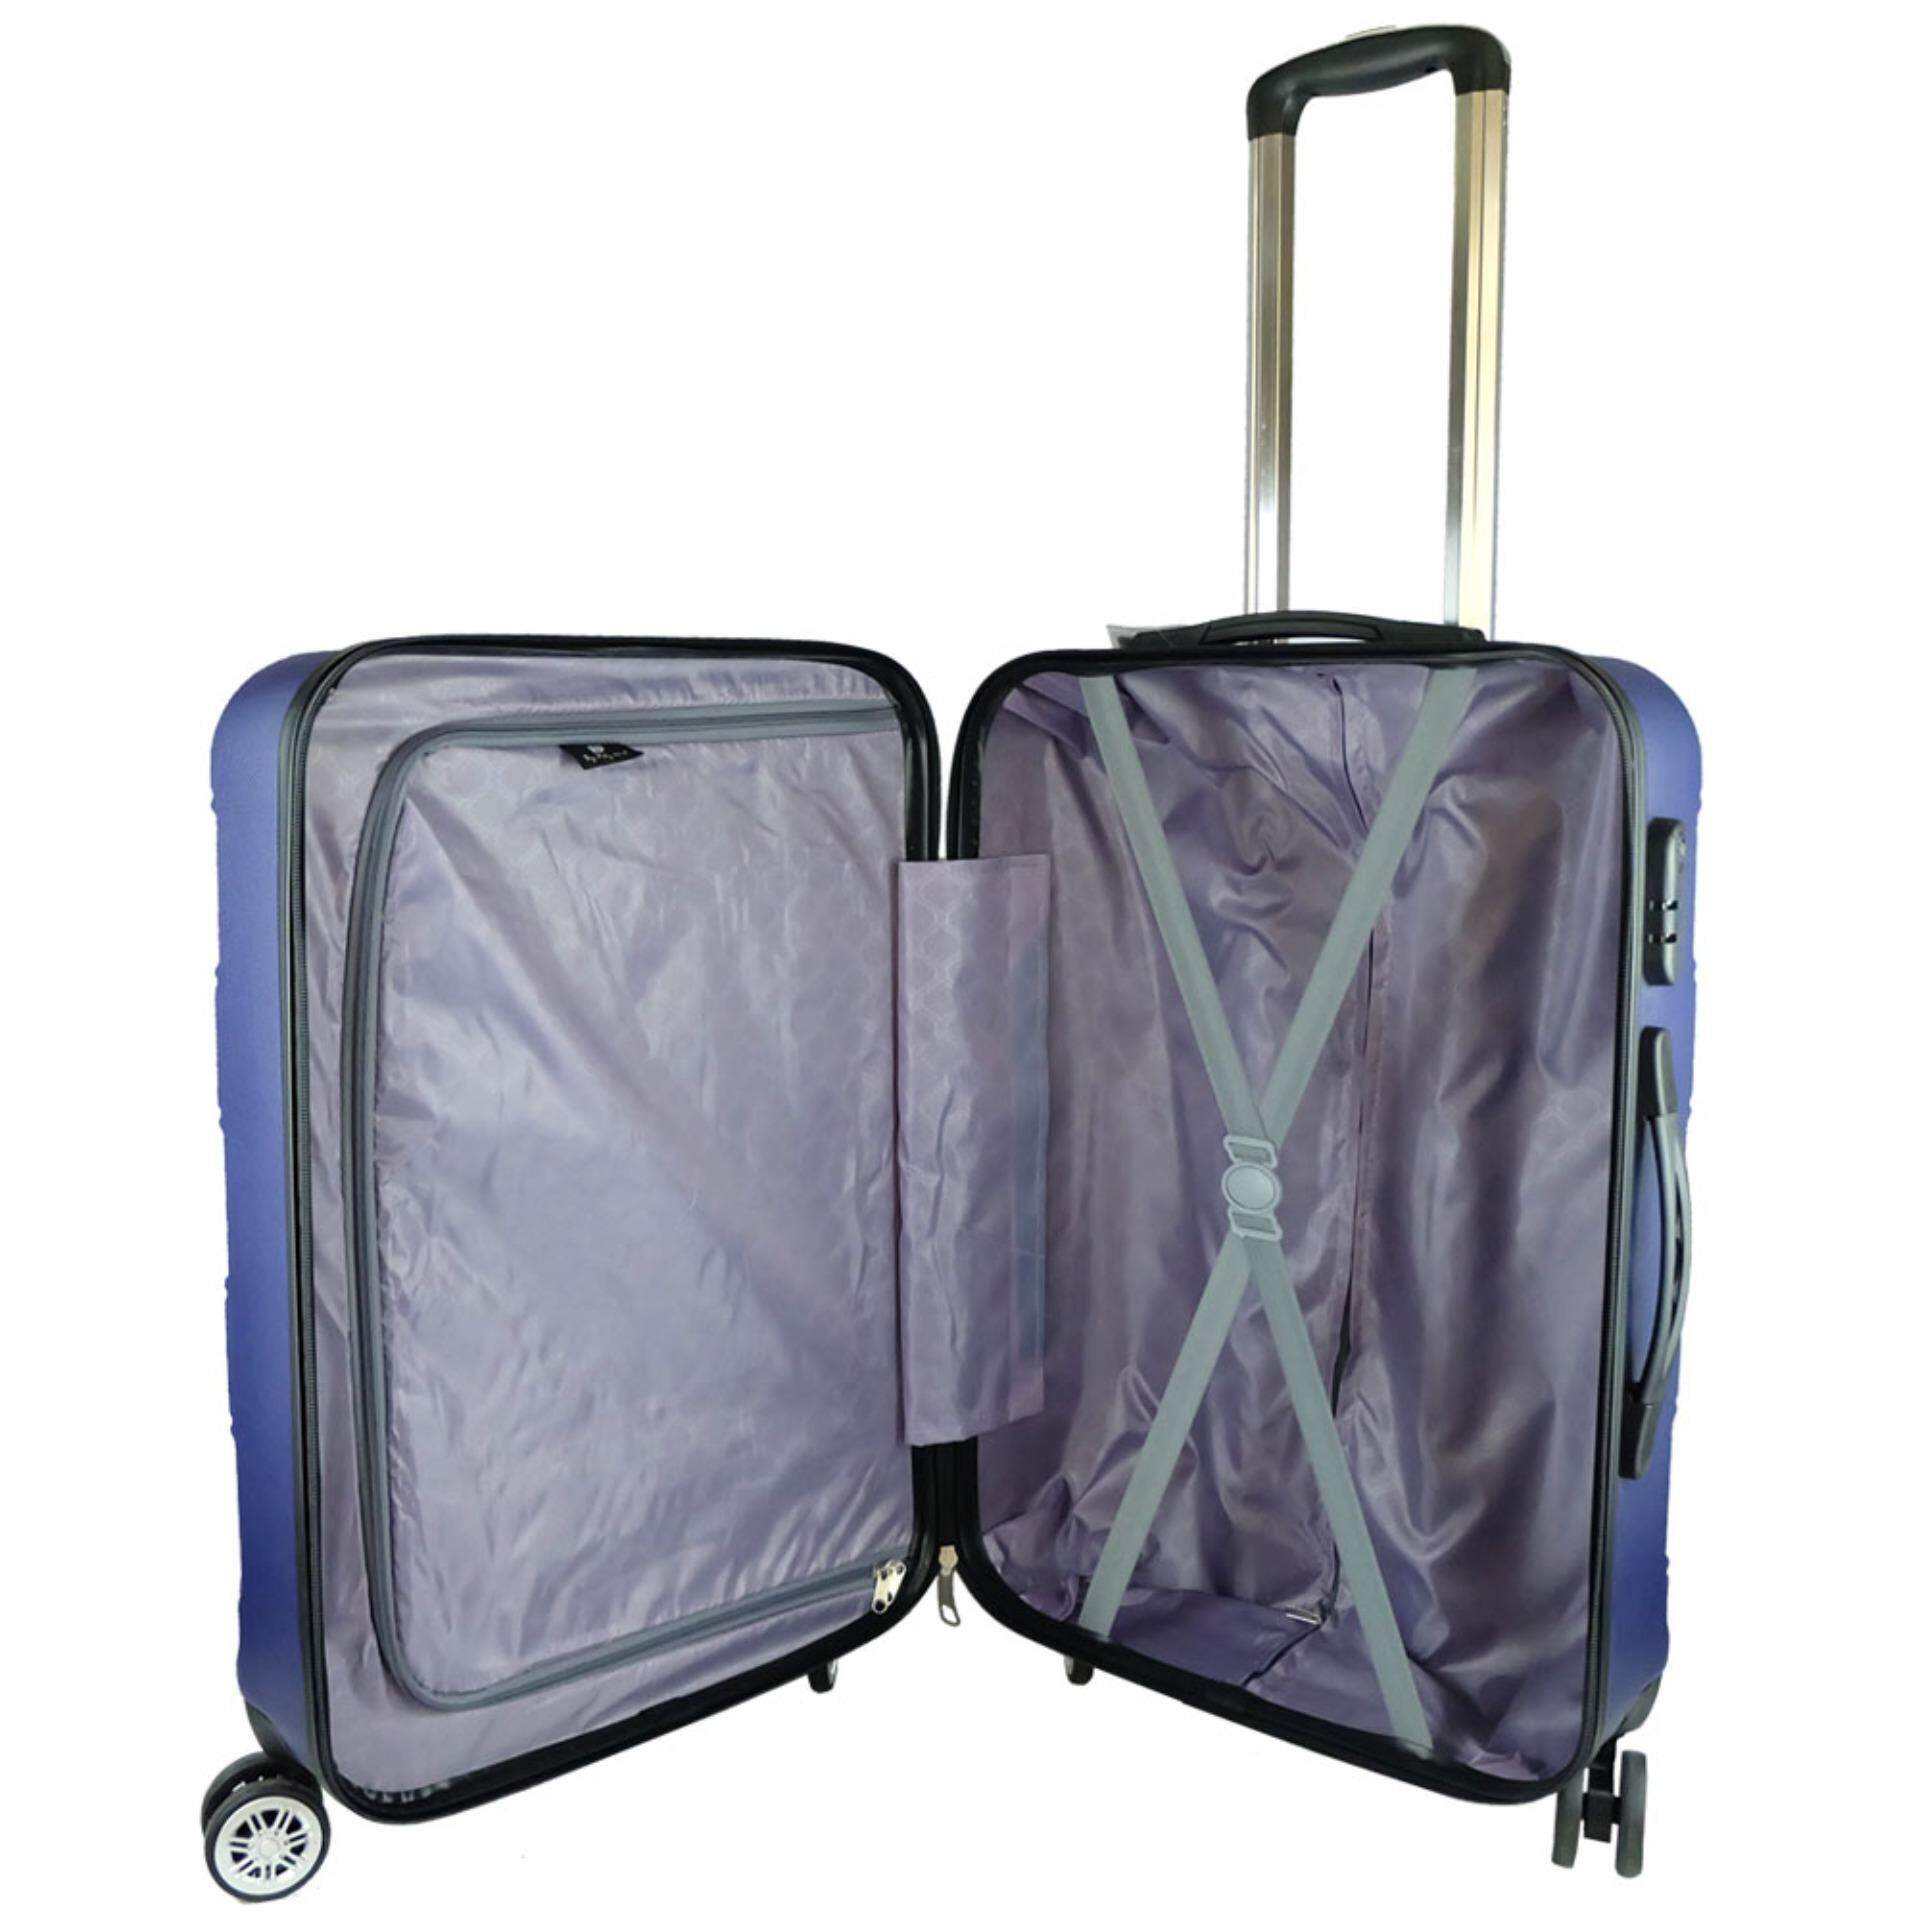 Waterpolo WA1792- 24 inch ABS Hard Case Trolley- Navy